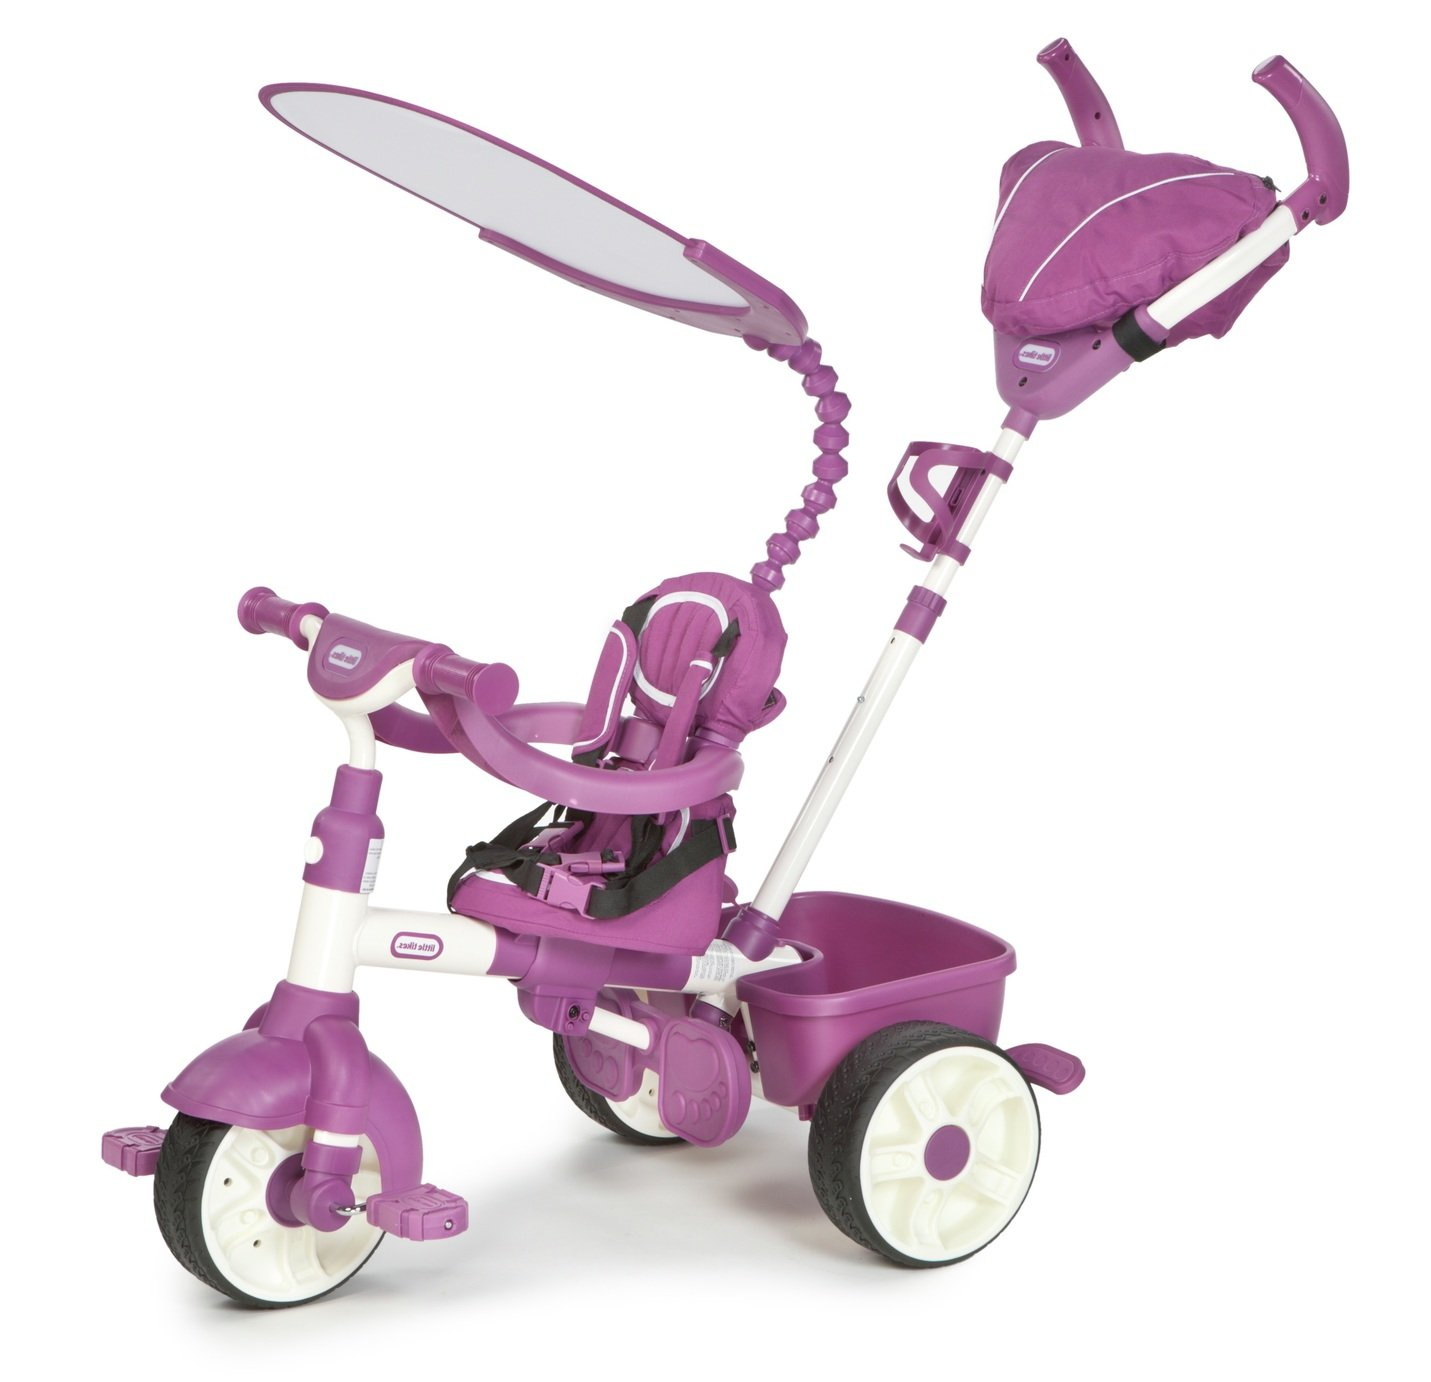 Little Tikes 4 In 1 Sports Edition Trike   Pink/ White